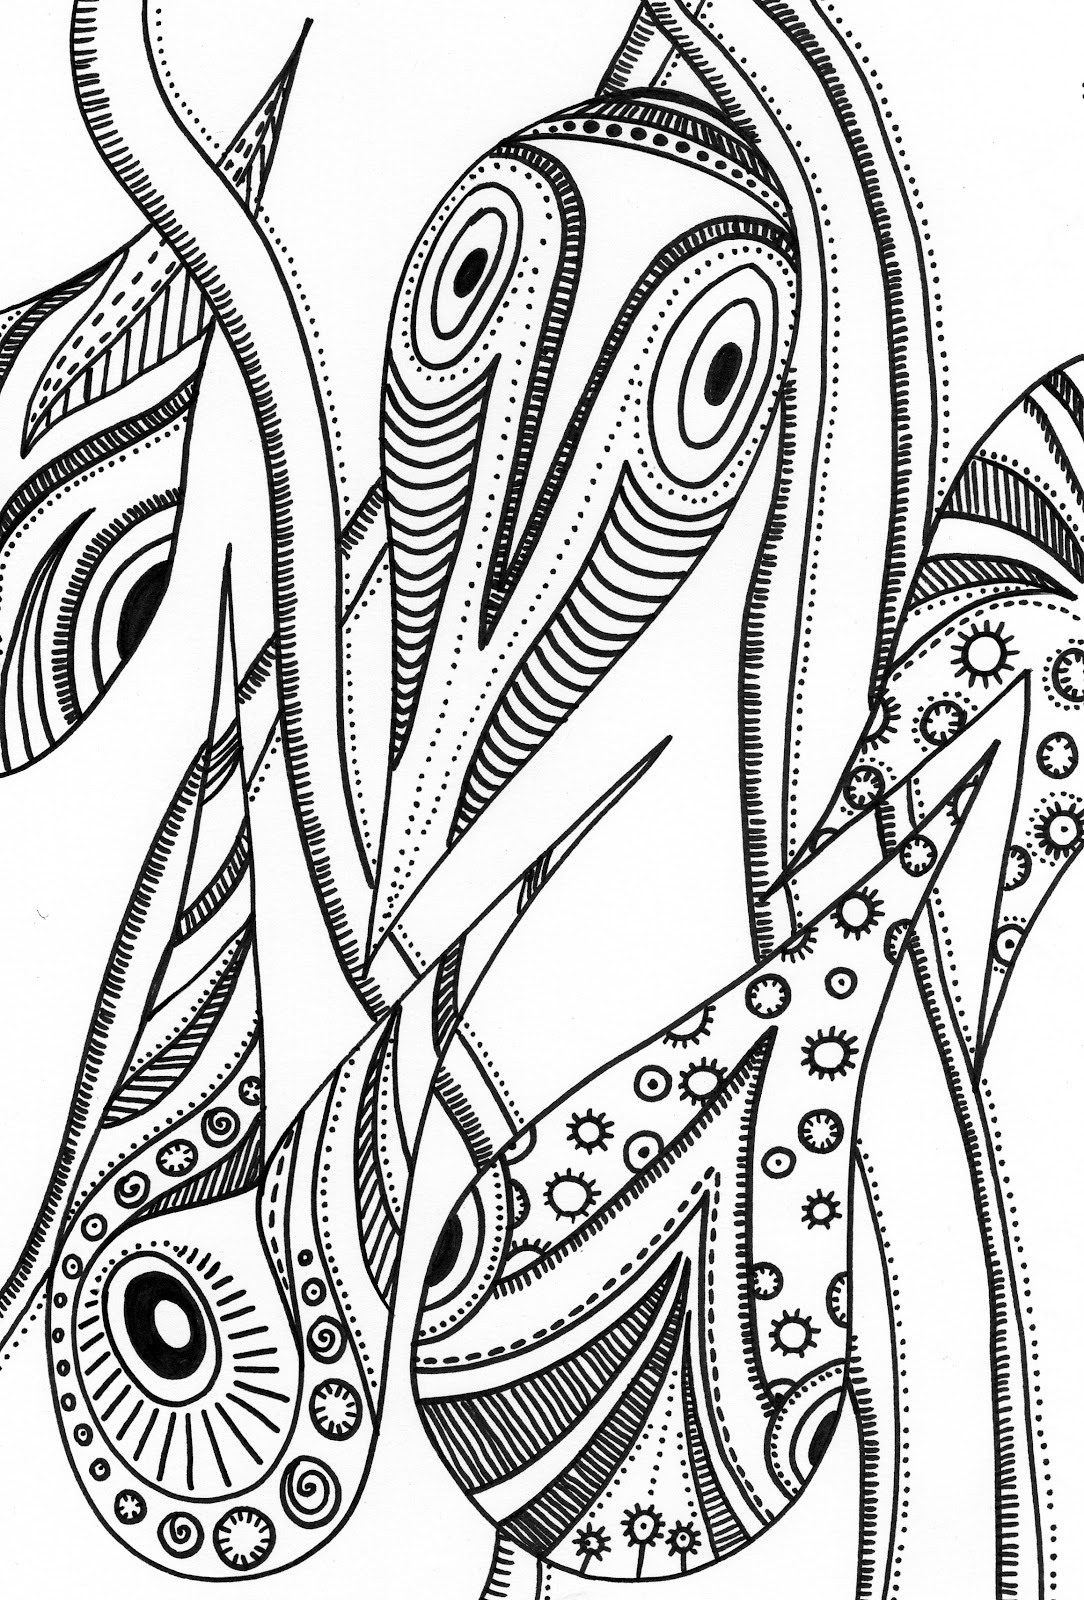 The Hemulen's Dress: My Colouring Pages